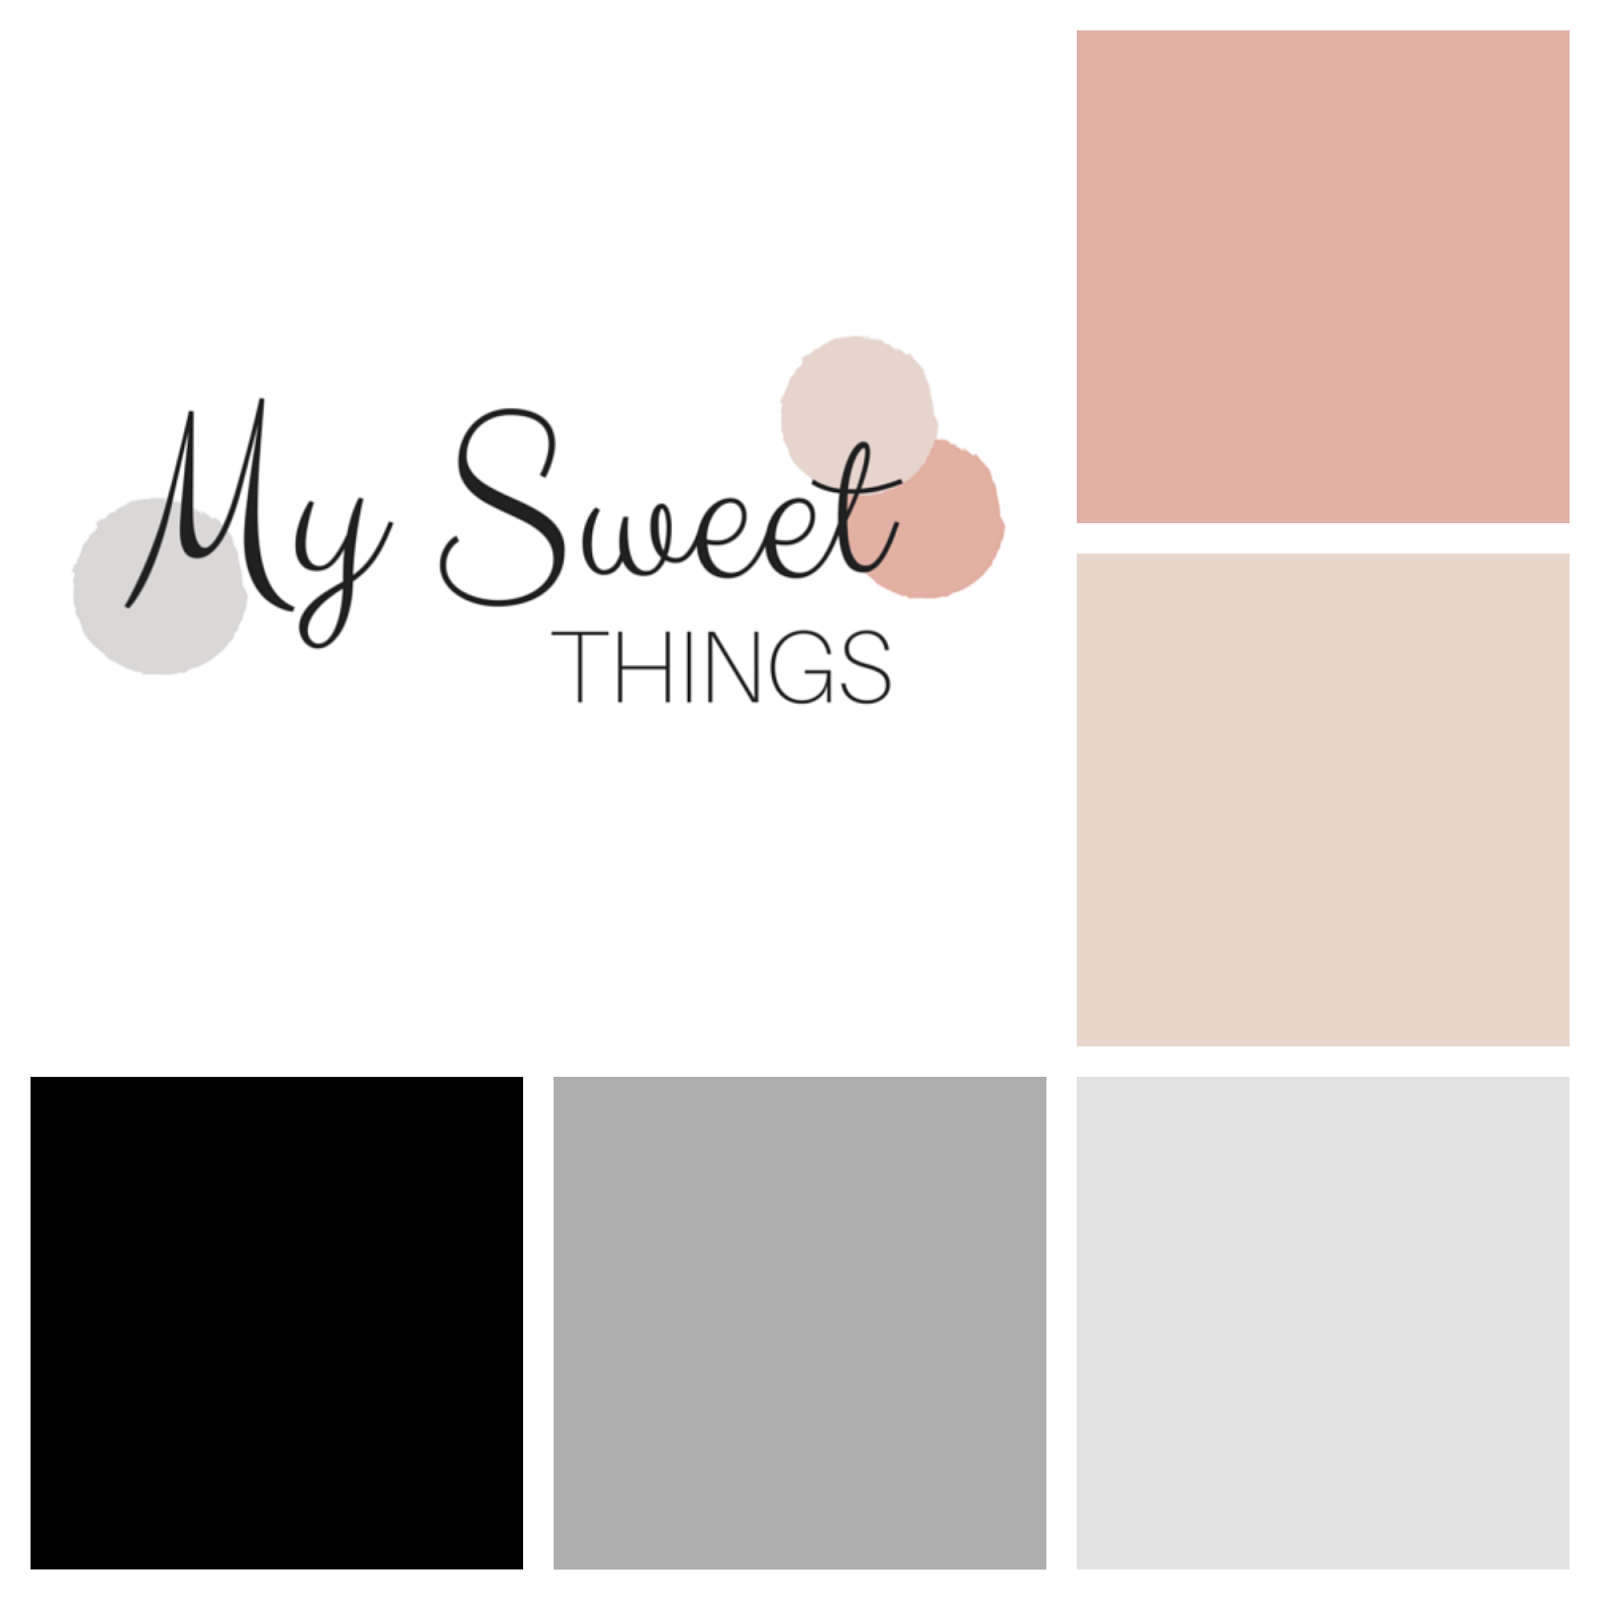 FELIZ ANIVERSARIO MY SWEET THINGS!!!!